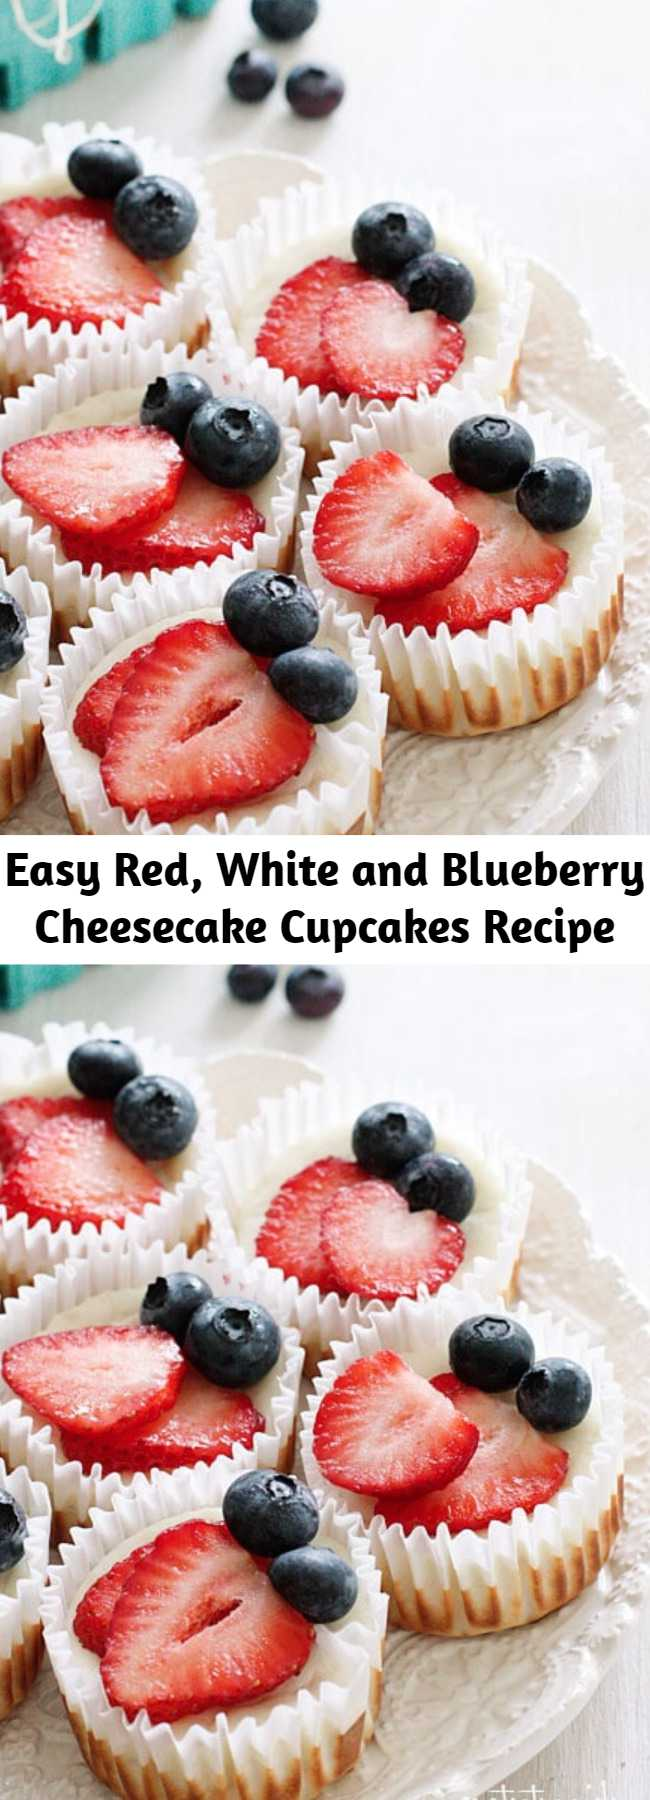 Easy Red, White and Blueberry Cheesecake Cupcakes Recipe - Mini cheesecake cupcakes made with Greek yogurt and cream cheese with a vanilla wafer crust topped with strawberries and blueberries to create a red, white and blue dessert using Mother Nature as my source for food coloring.